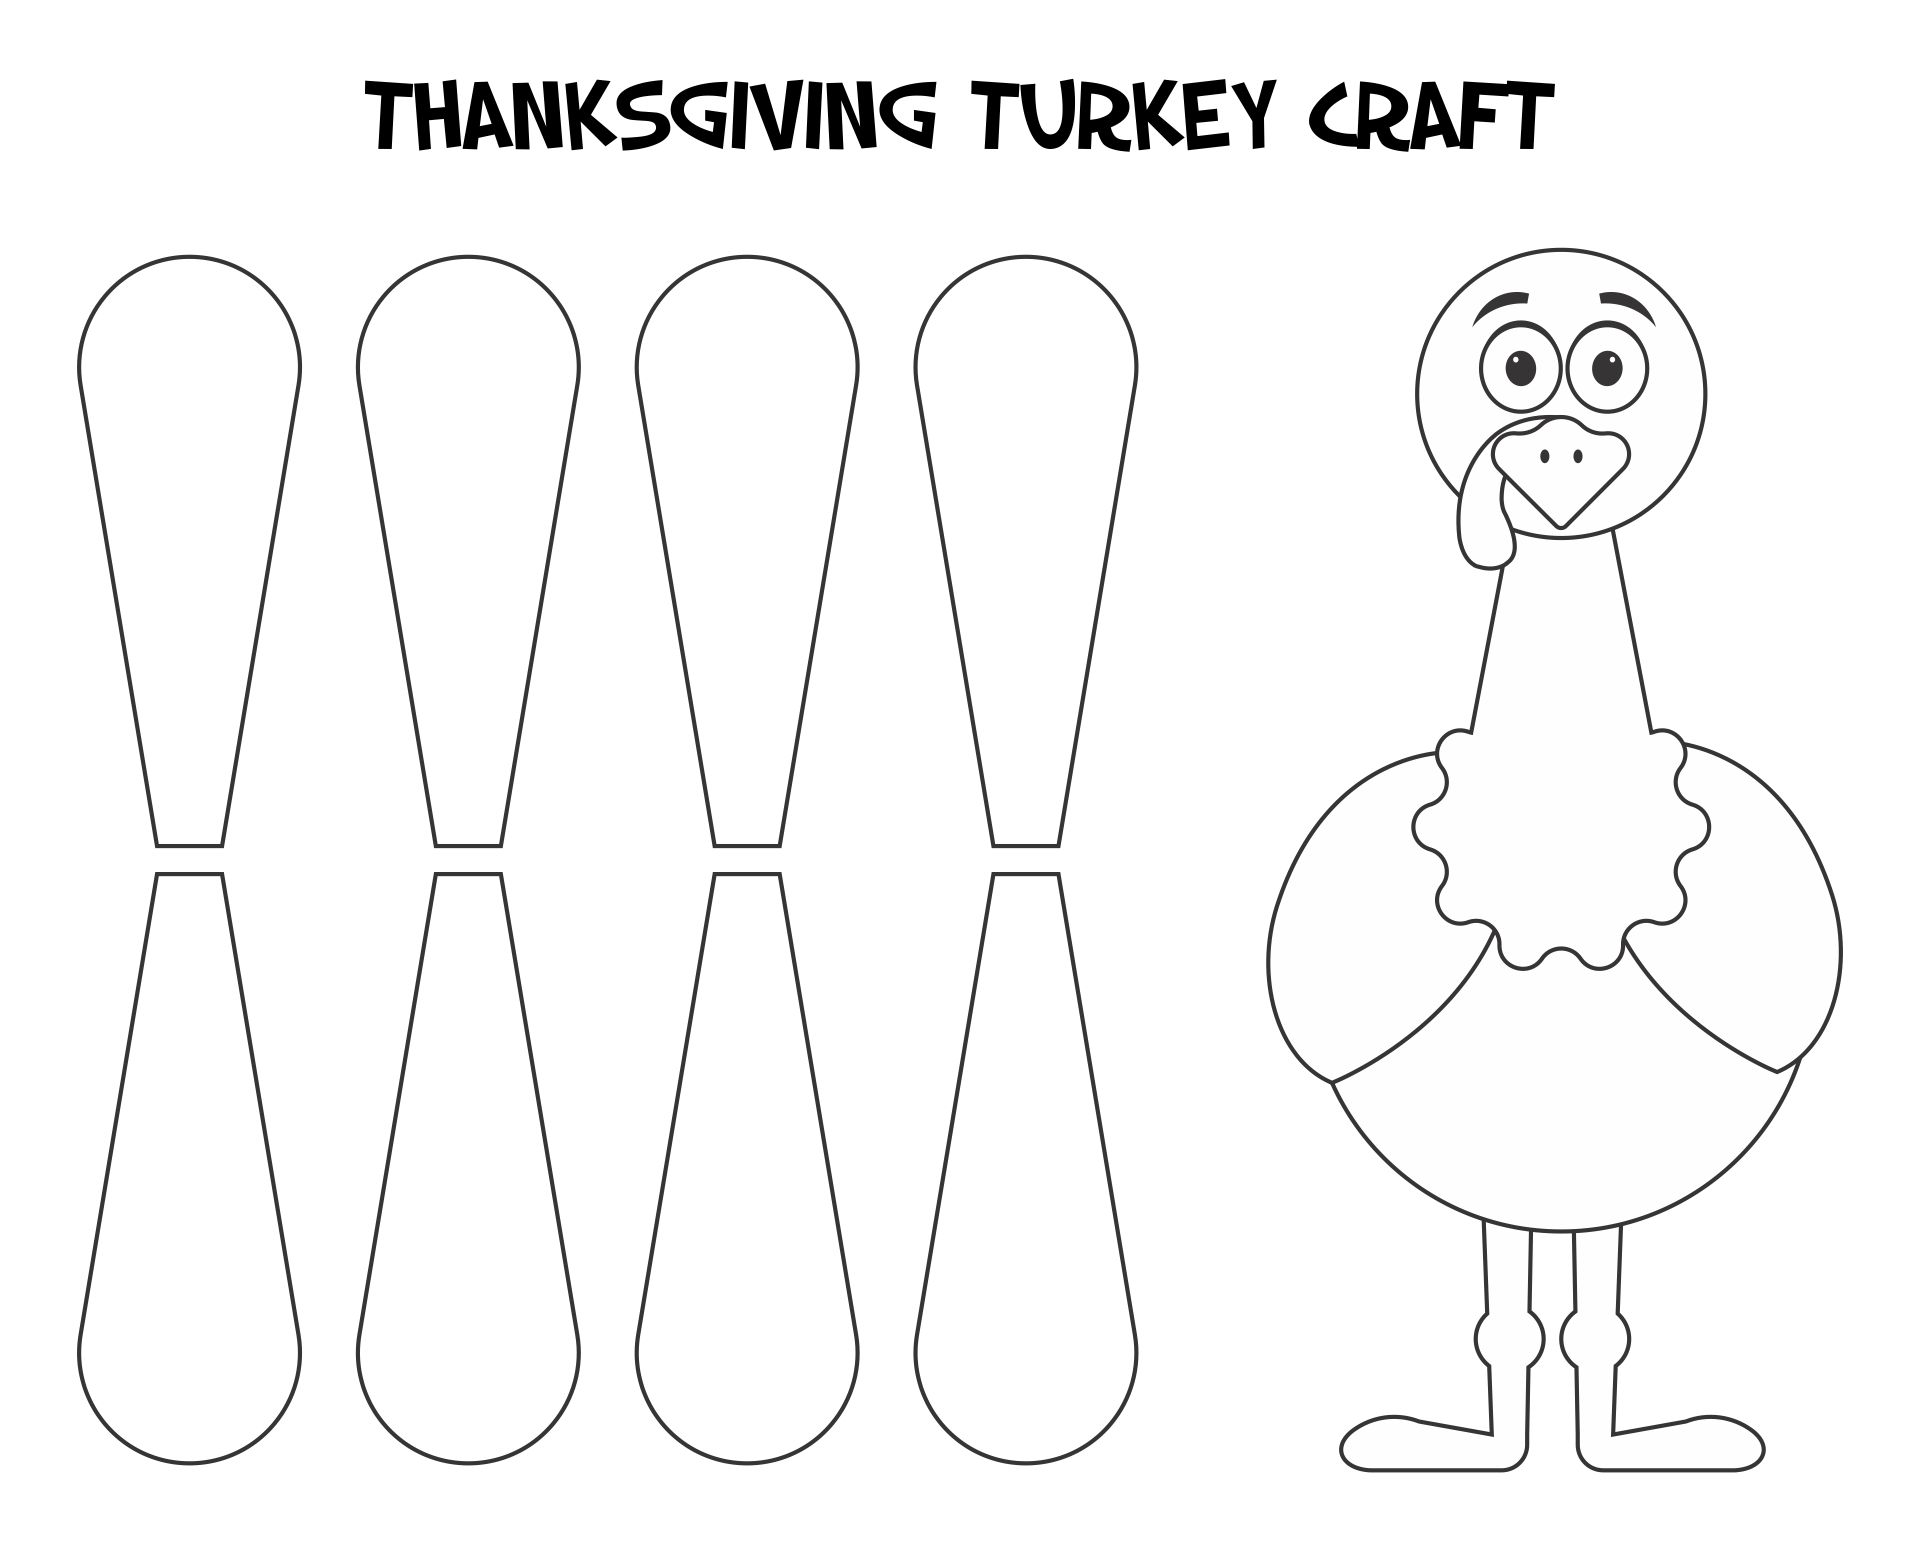 Thanksgiving Turkey Craft Templates